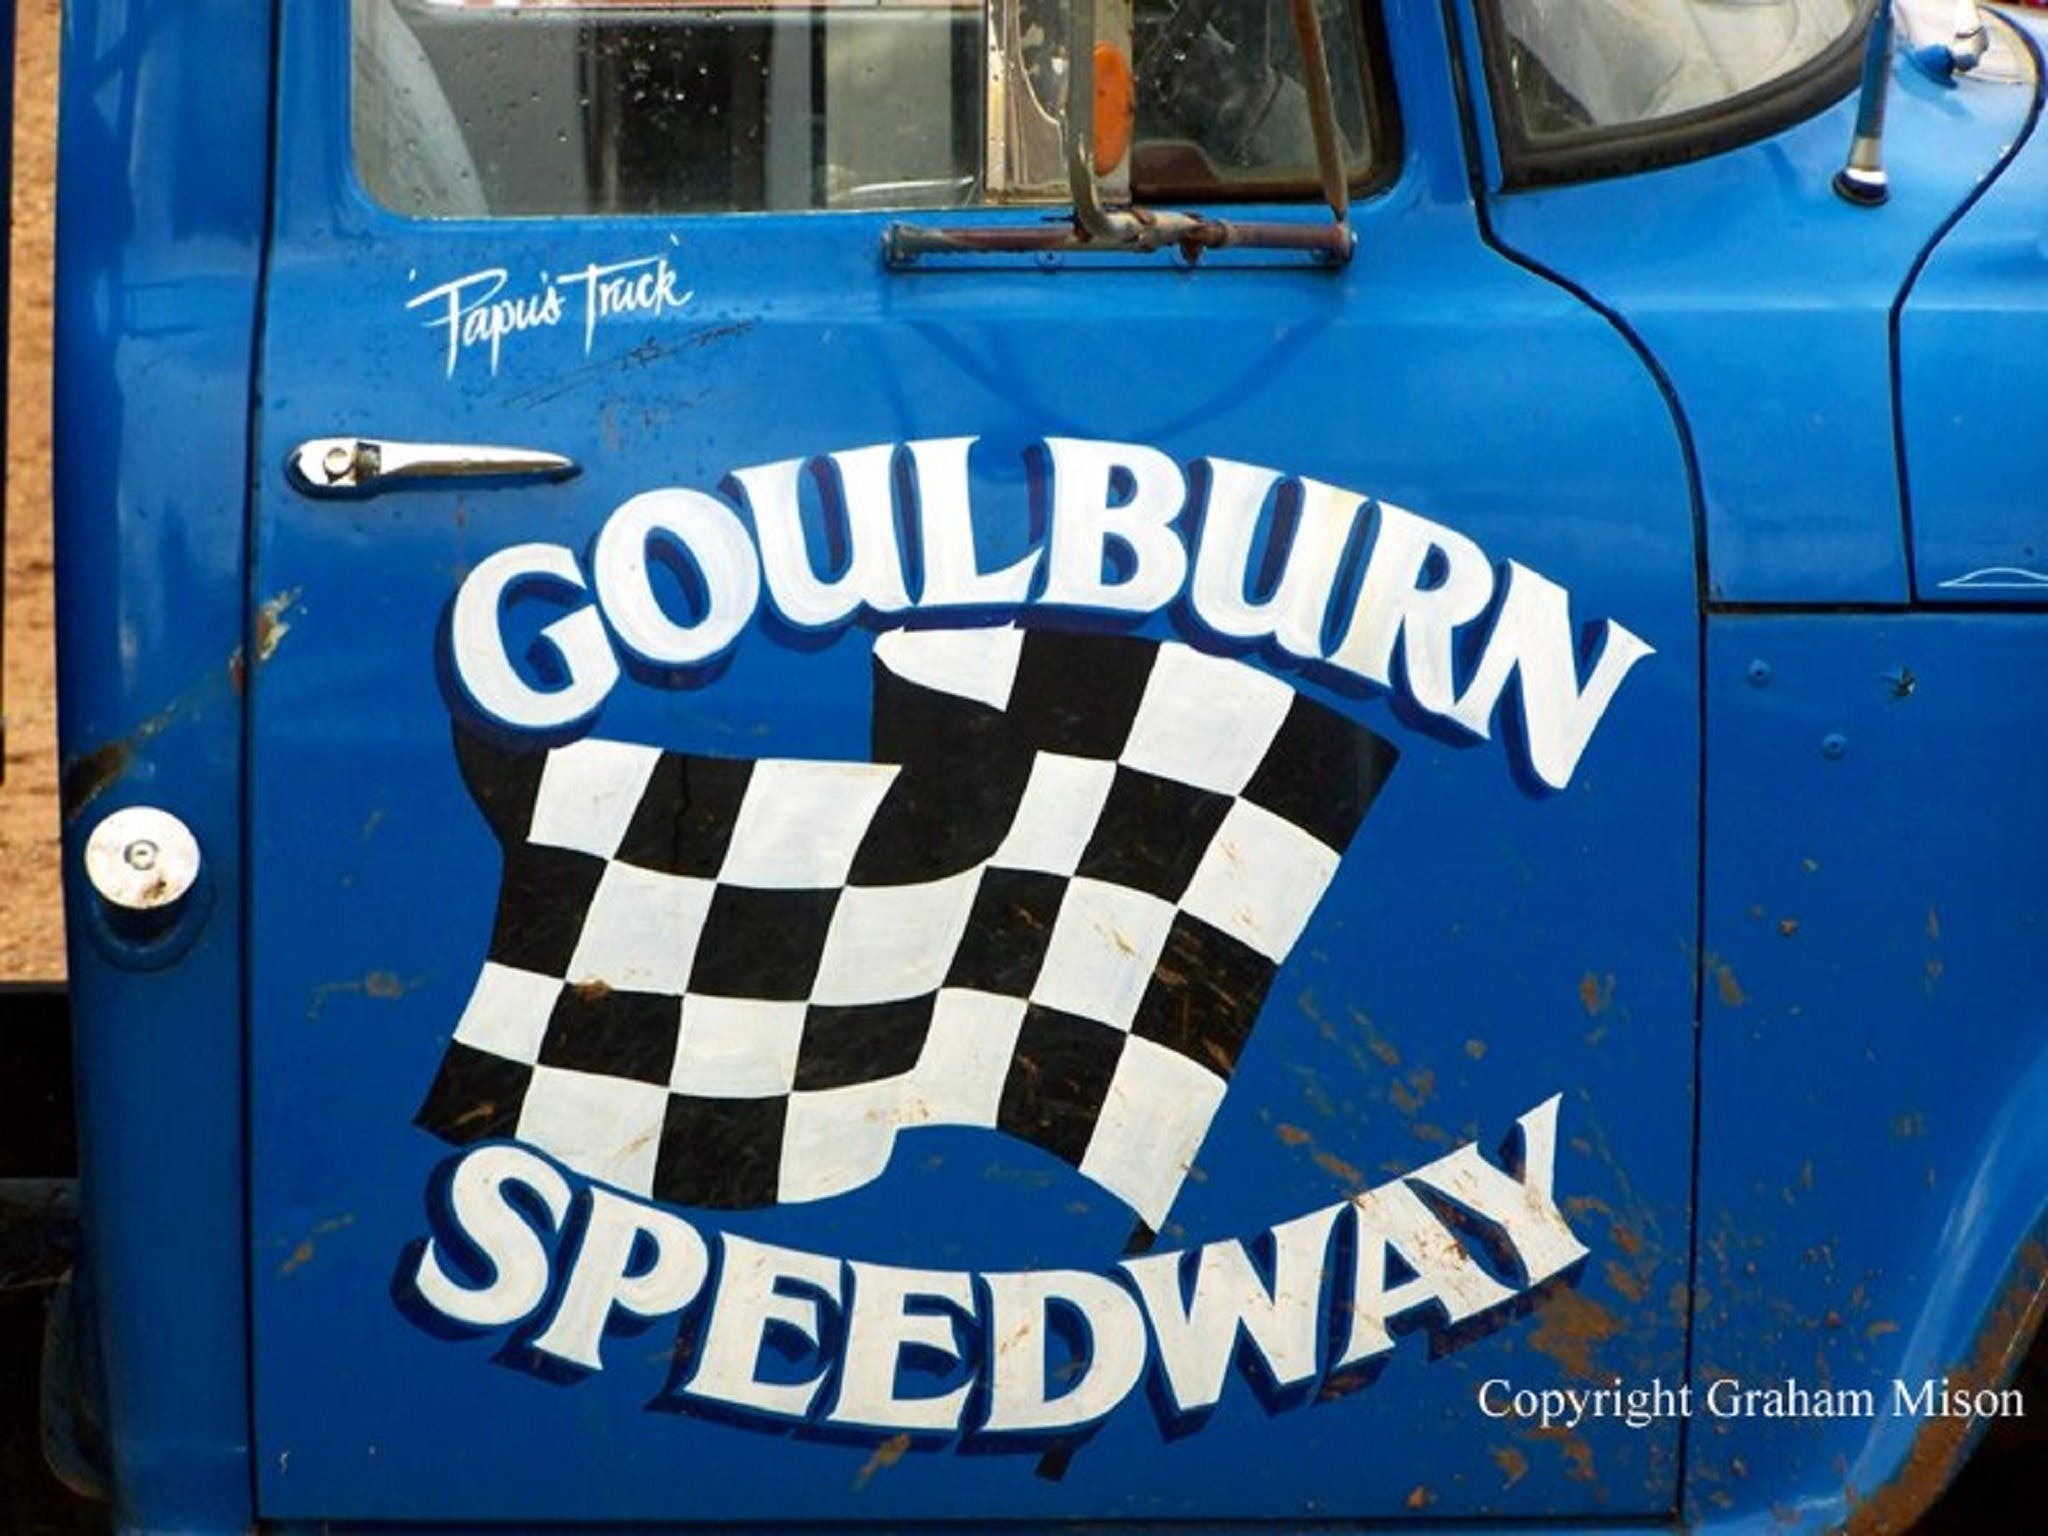 50 years of racing at Goulburn Speedway - Yarra Valley Accommodation